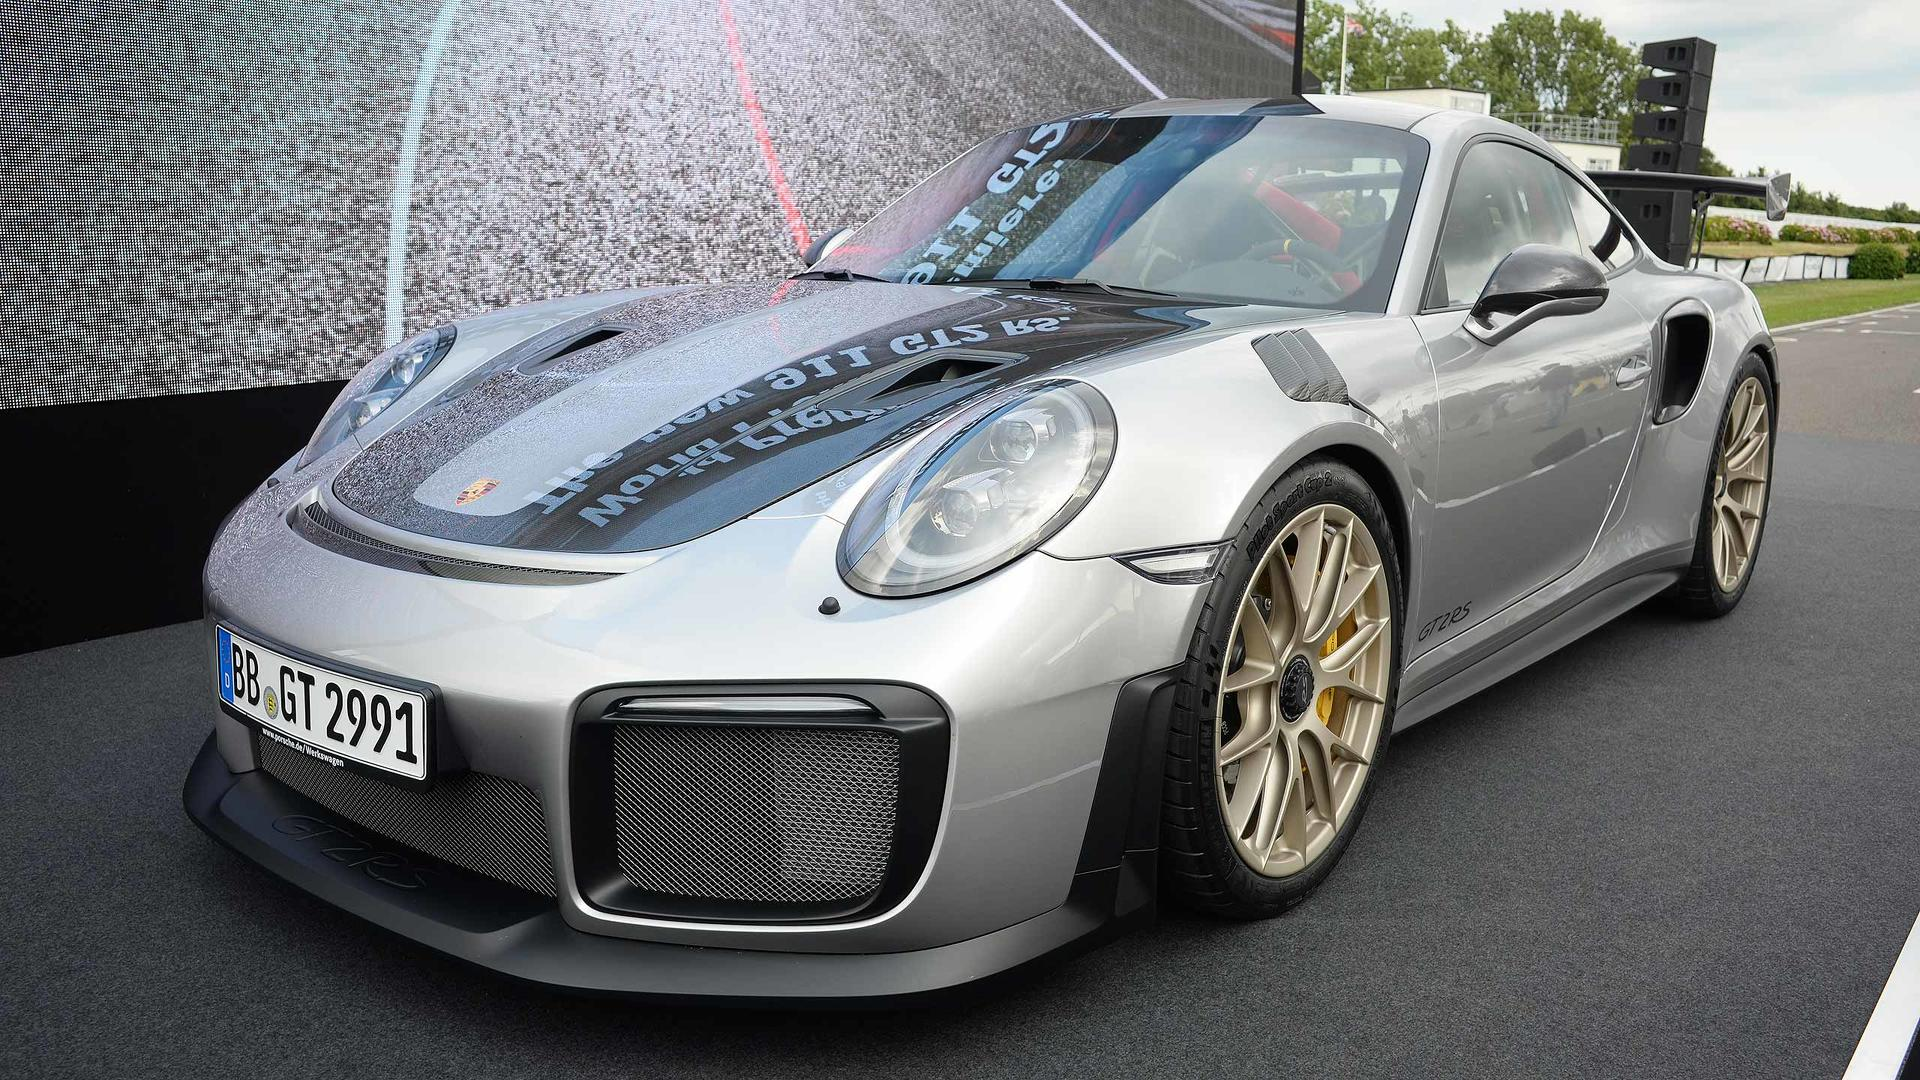 porsche 911 gt2 rs storms into goodwood with 690 hp 553 lb ft. Black Bedroom Furniture Sets. Home Design Ideas